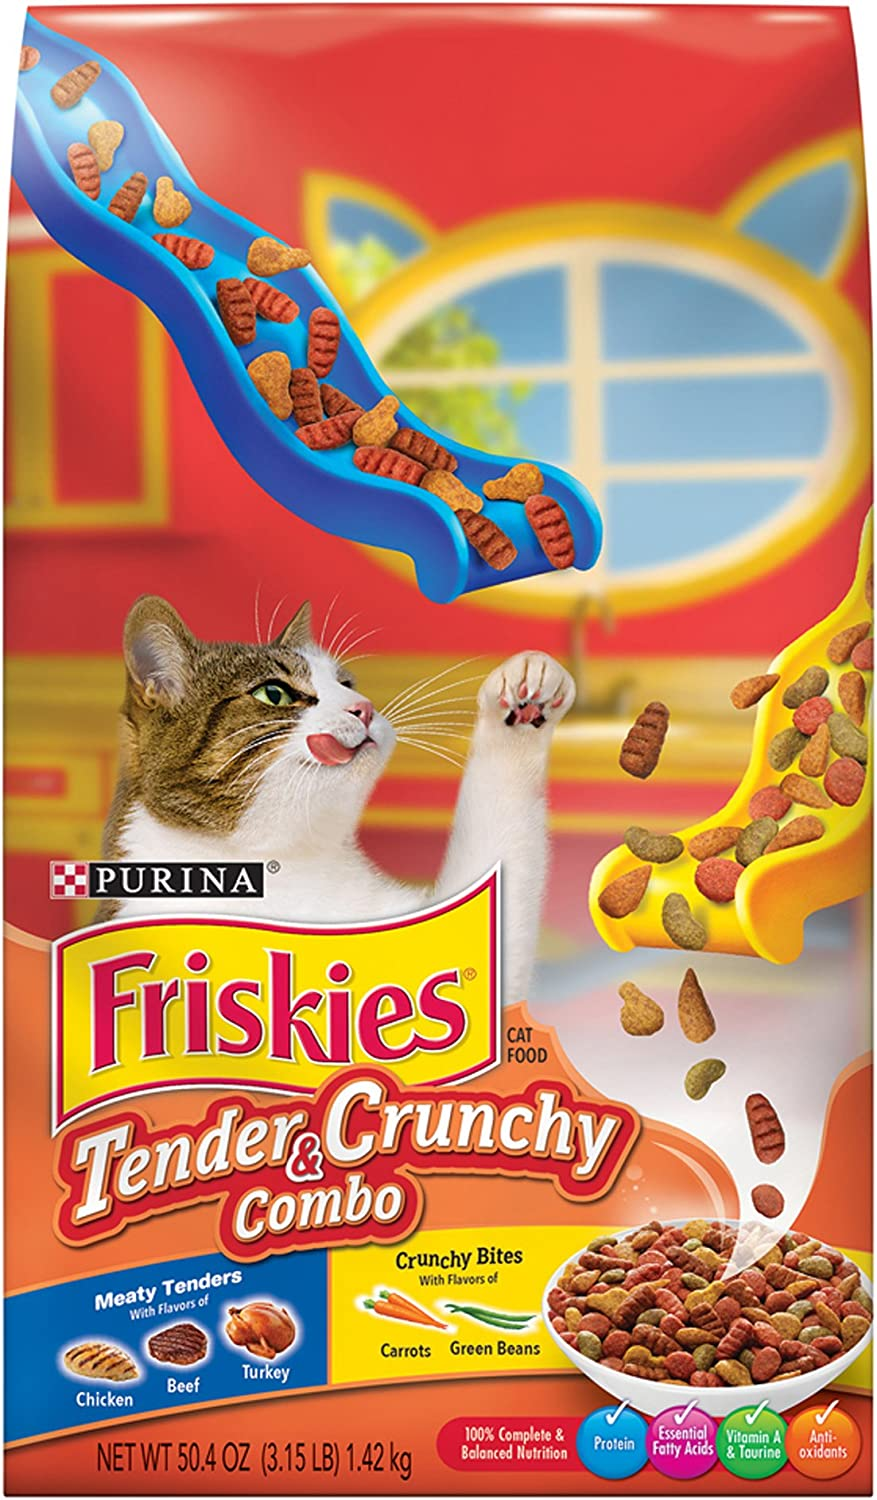 Friskies Dry Cat Food, Tender & Crunchy Combo, 3.15Pound Bag, Pack of 6